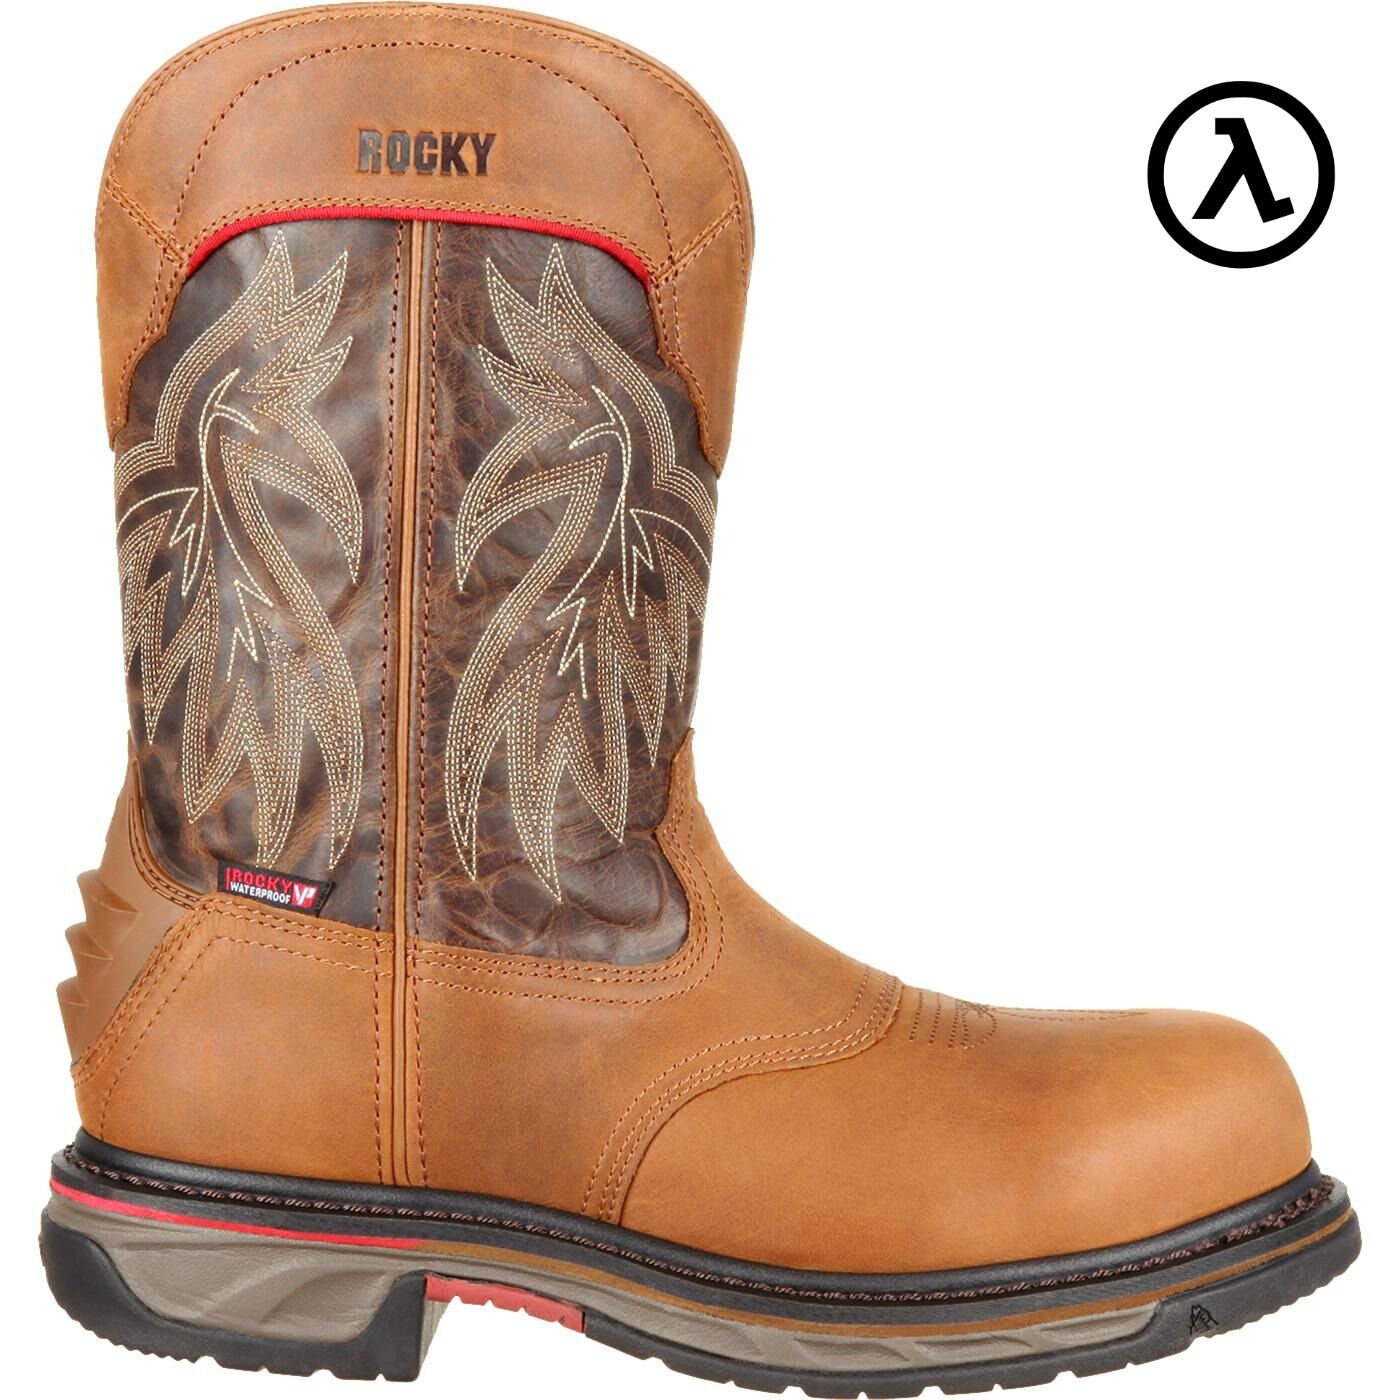 ROCKY IRON SKULL COMPOSITE TOE WATERPROOF WESTERN BOOTS RKW0203 -NEW - ALL SIZES -NEW RKW0203 58e3c1